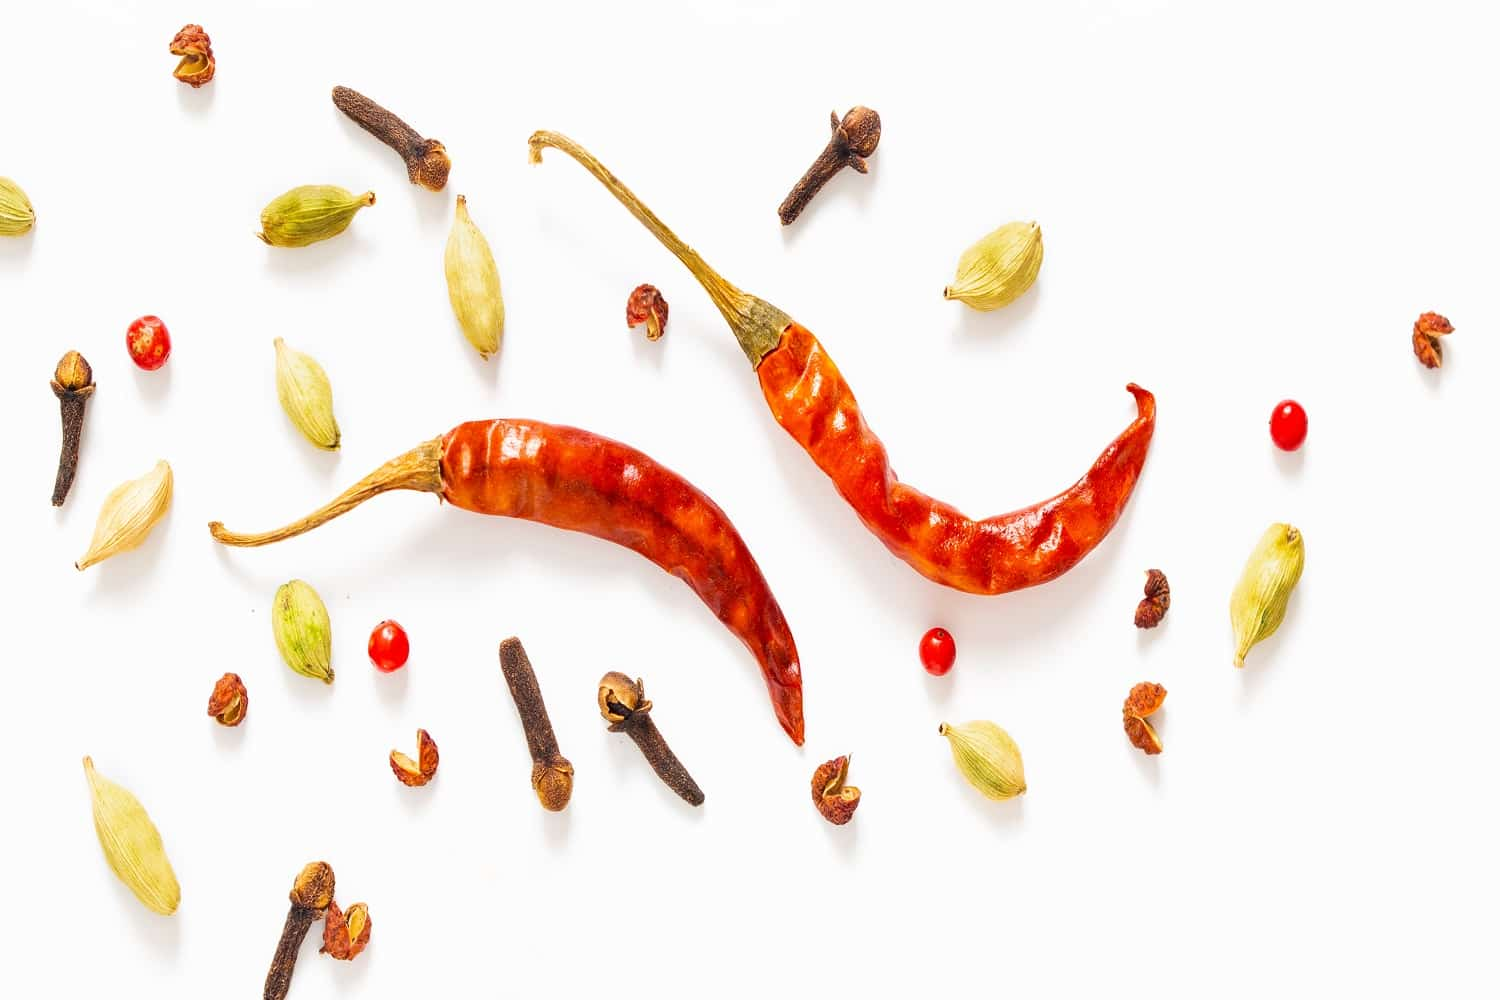 food spices presentation background red dried chilies various exotic spieces white background